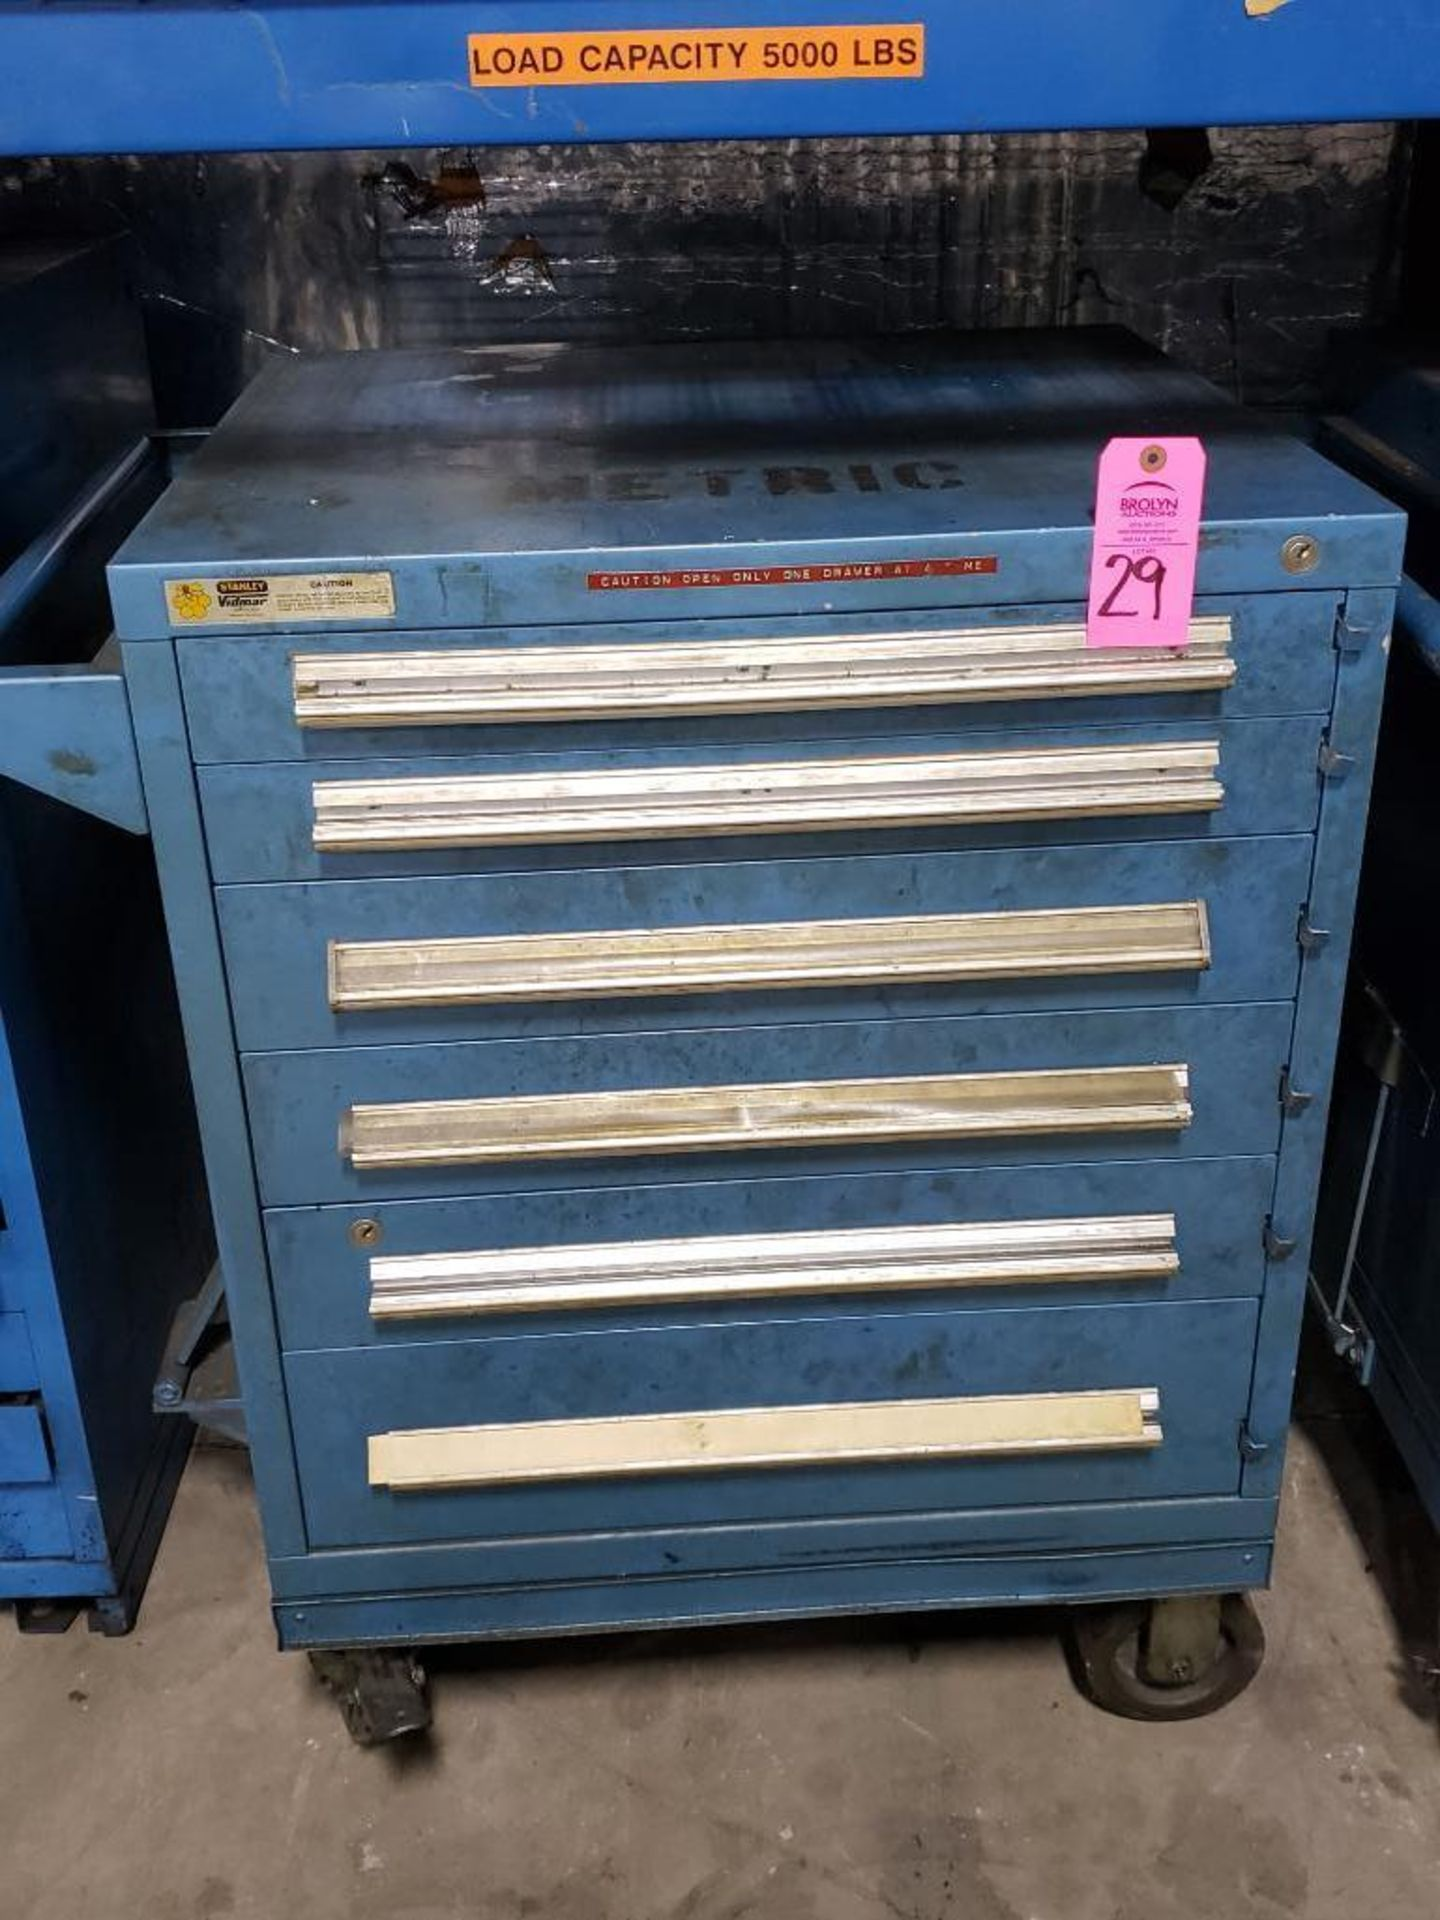 Lot 29 - 6 drawer Stanley Vidmar tool cabineton casters. Overall dimensions 41Tx35.5Wx28D.